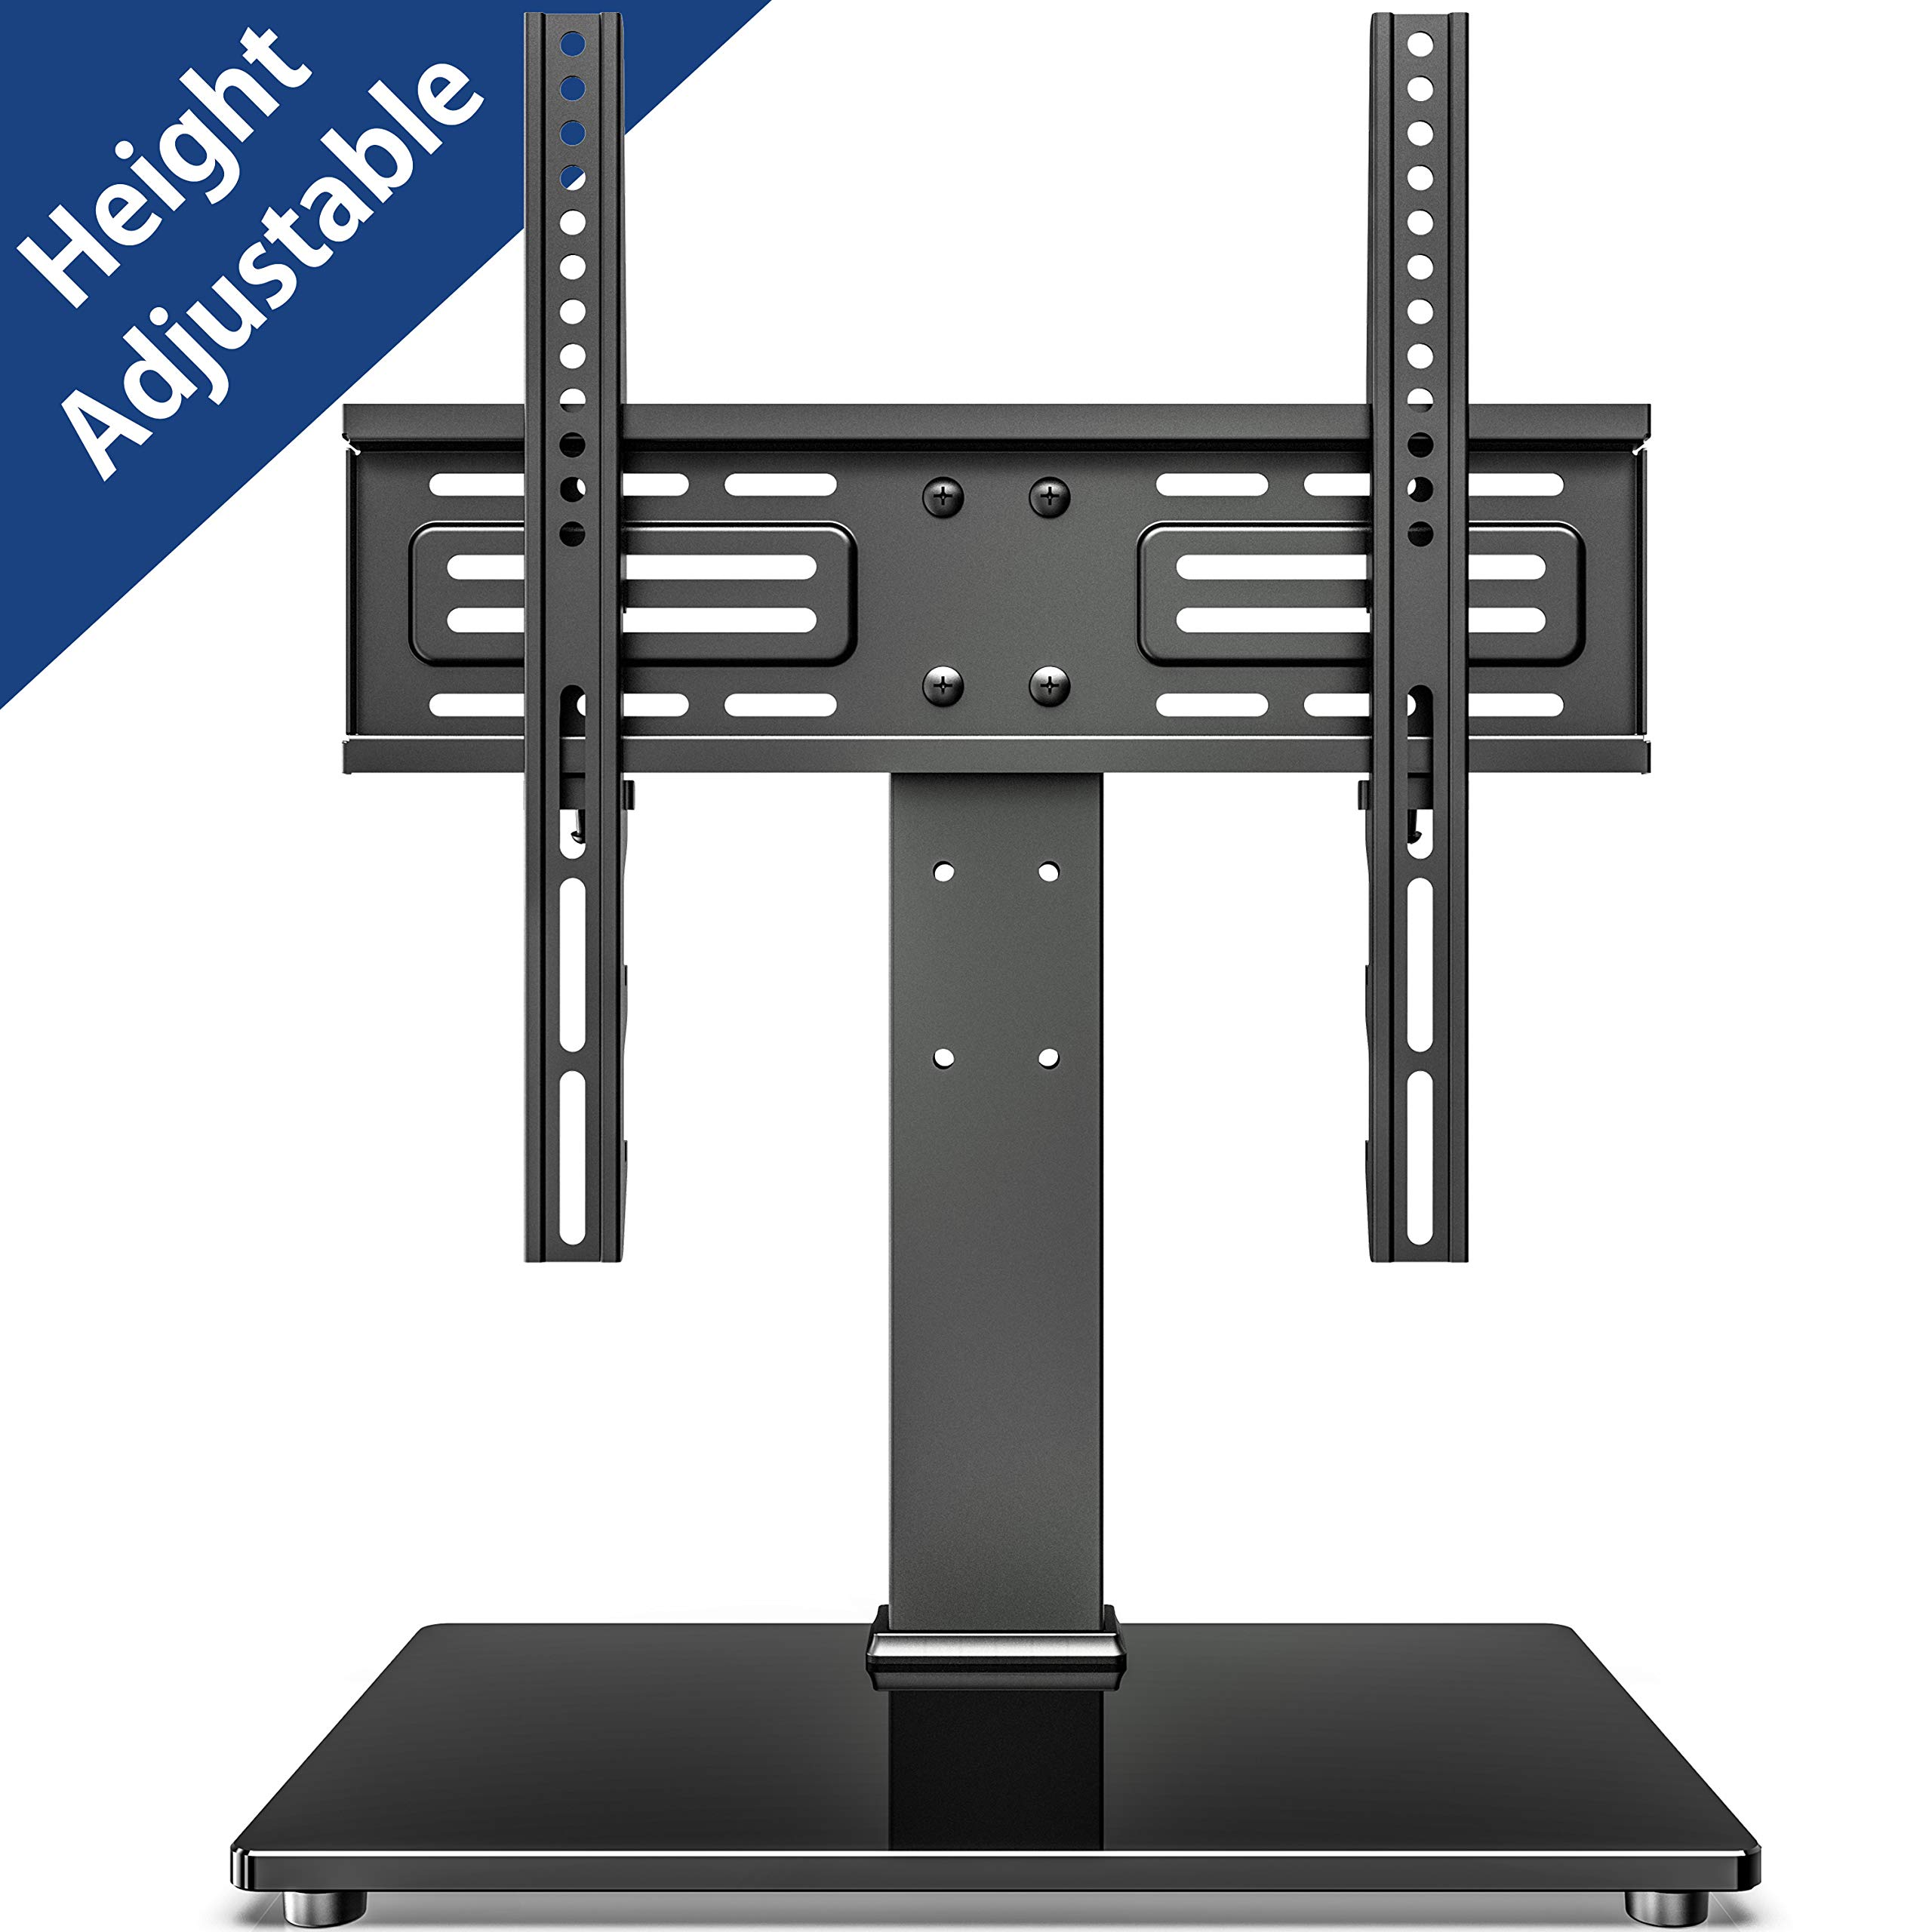 FITUEYES Universal TV Stand - Table Top TV Stand for 27-55 inch LCD LED TVs - 6 Level Height Adjustable TV Base Stand with Tempered Glass Base & Security Wire VESA 400x400 Holds up to 88lbs TT103701GB by FITUEYES